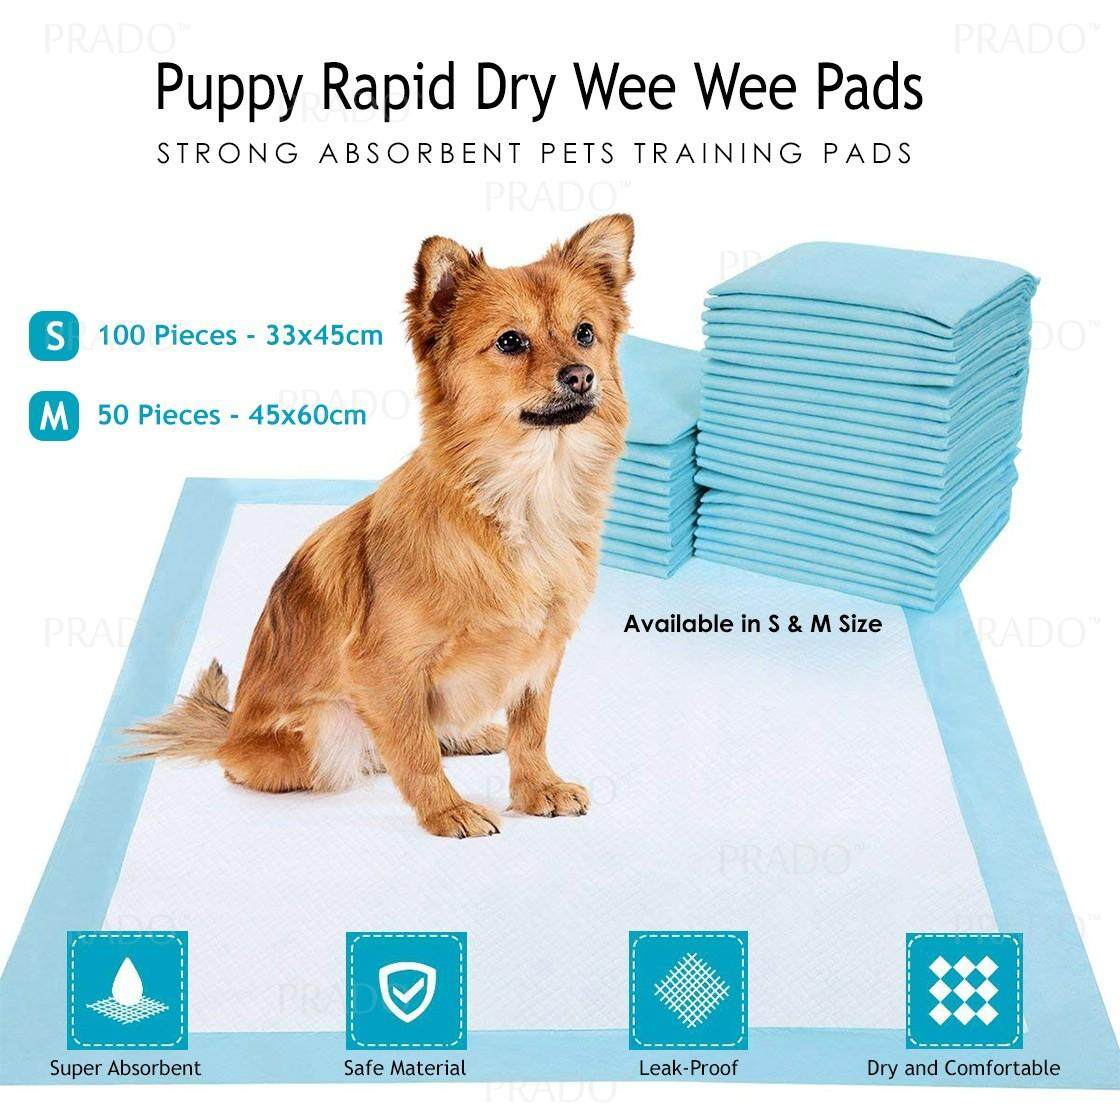 Prado Puppy Strong Absorbent Rapid Dry Leak Proof Lining And Locking Layers Pets Training Wee Wee Pads 21119 S Size By Prado.